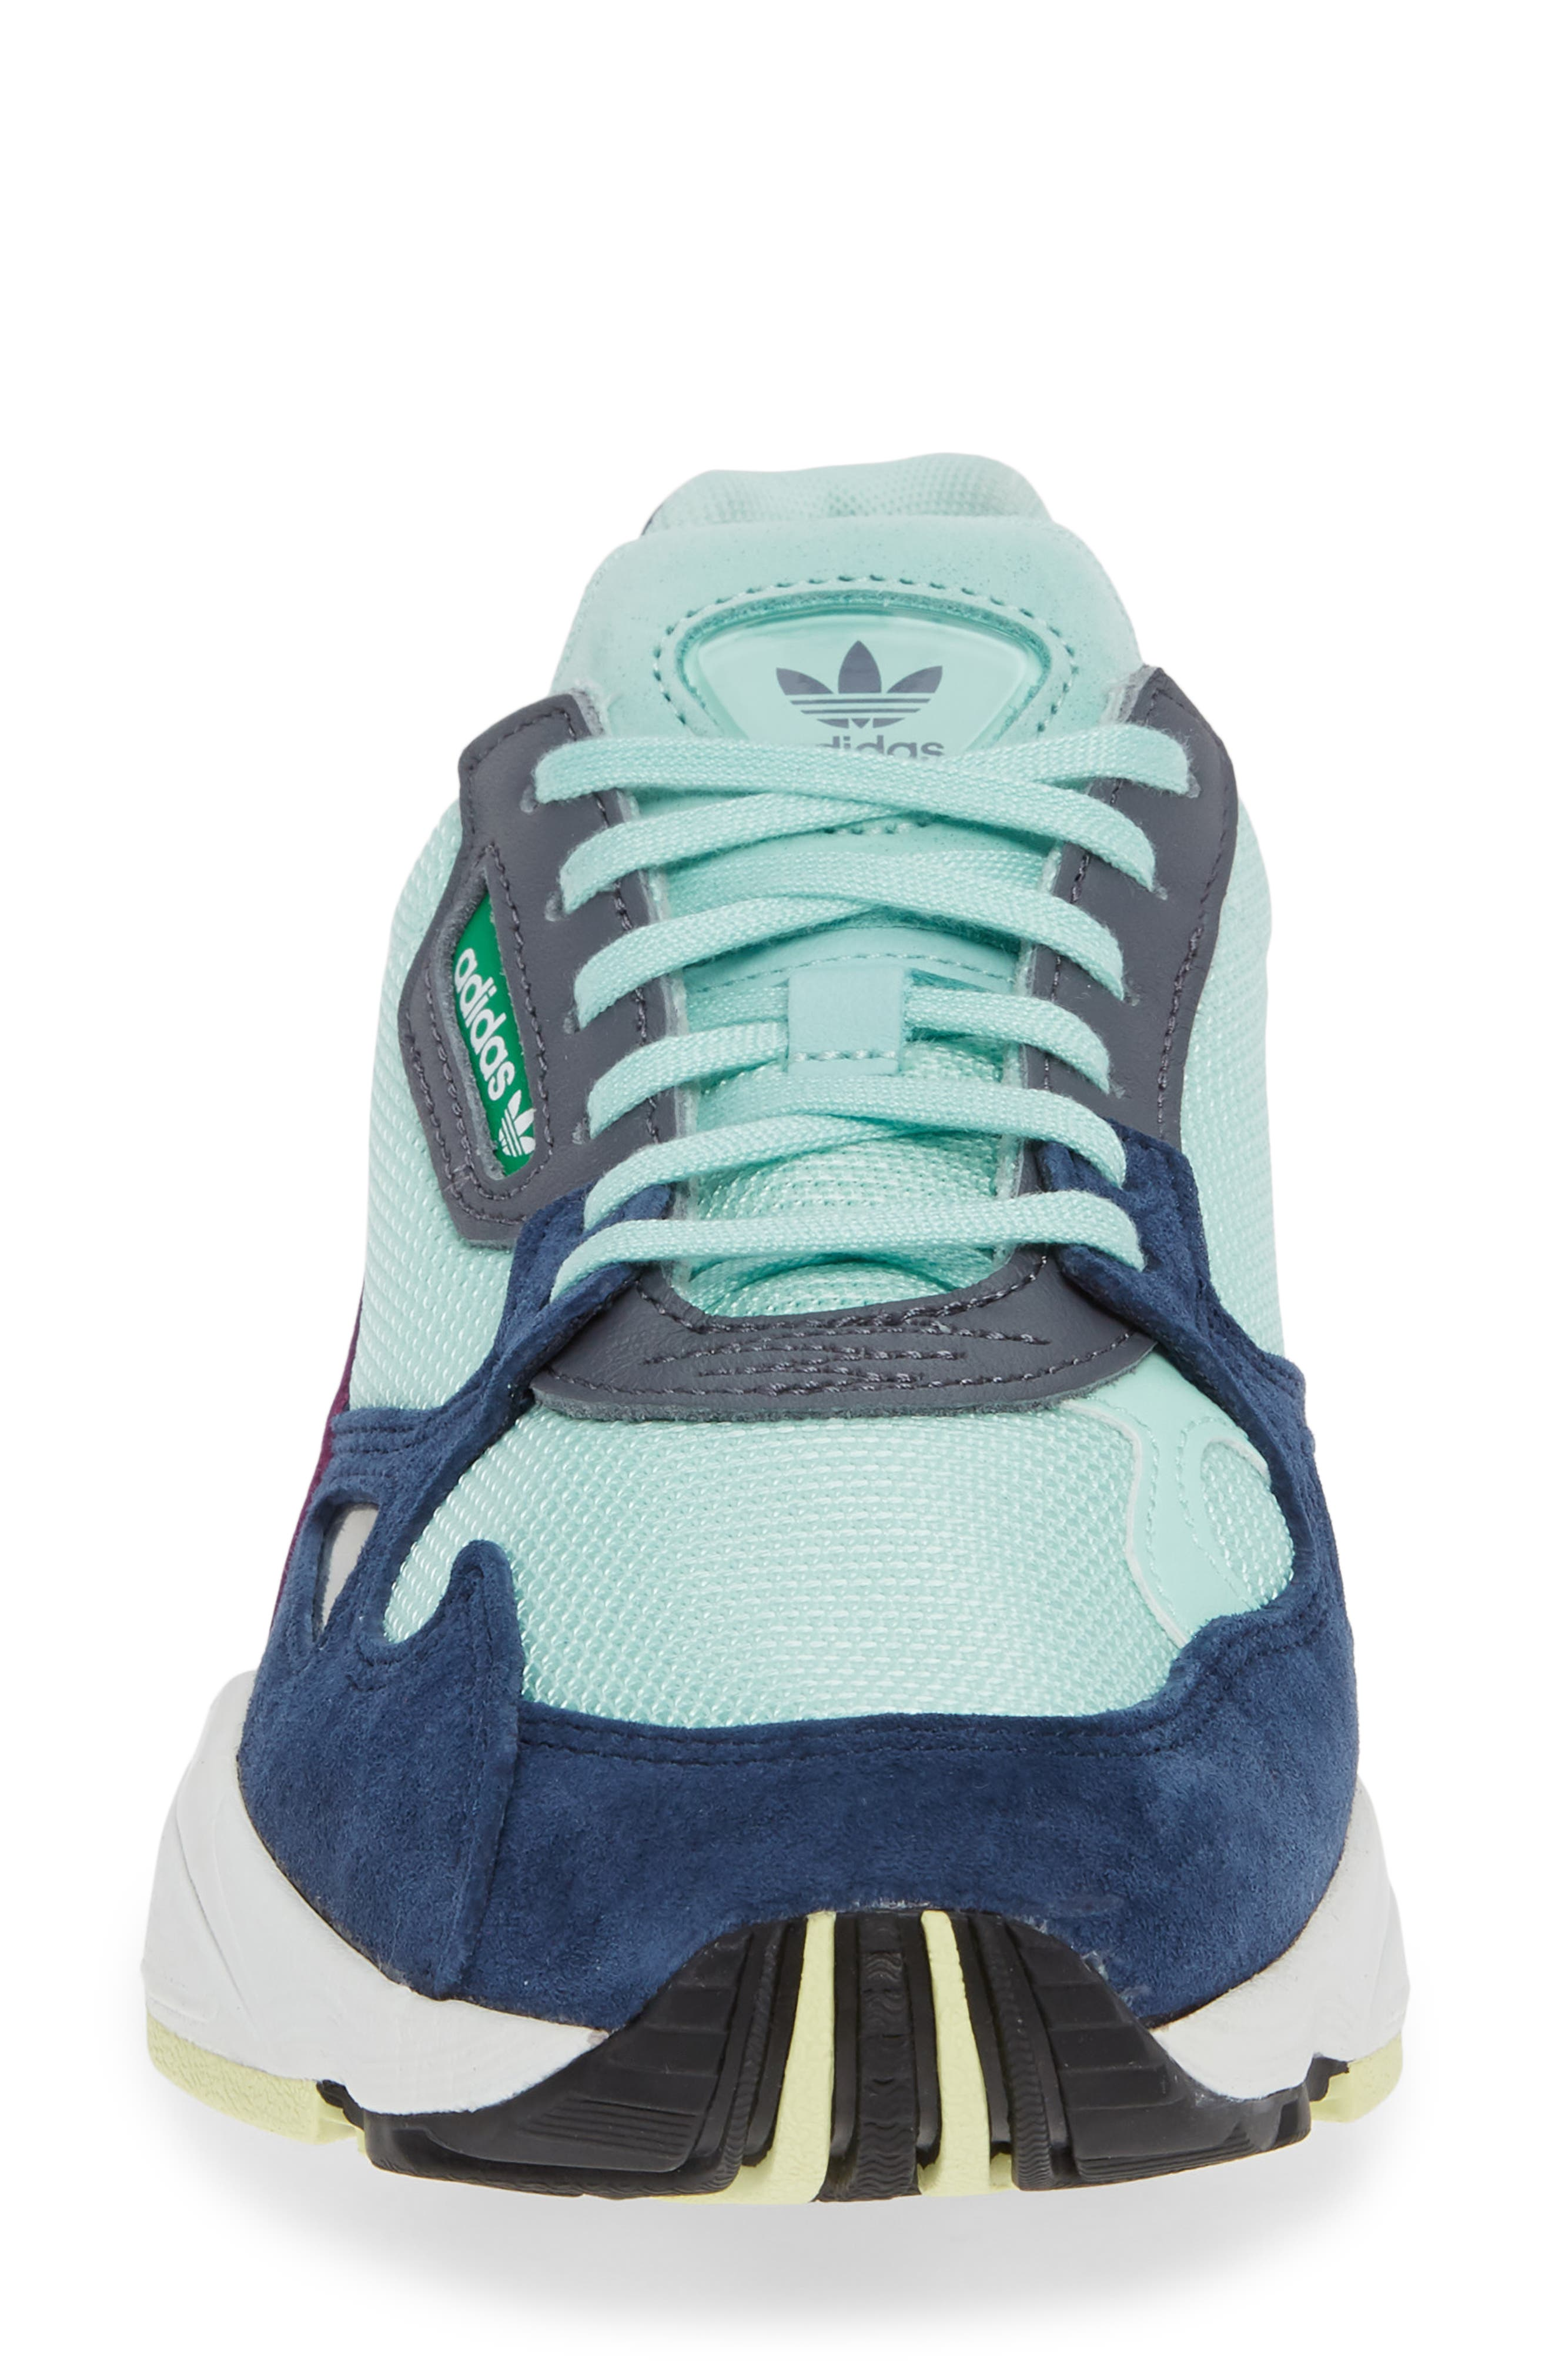 Falcon Sneaker,                             Alternate thumbnail 4, color,                             CLEAR MINT/ CLEAR MINT/ NAVY